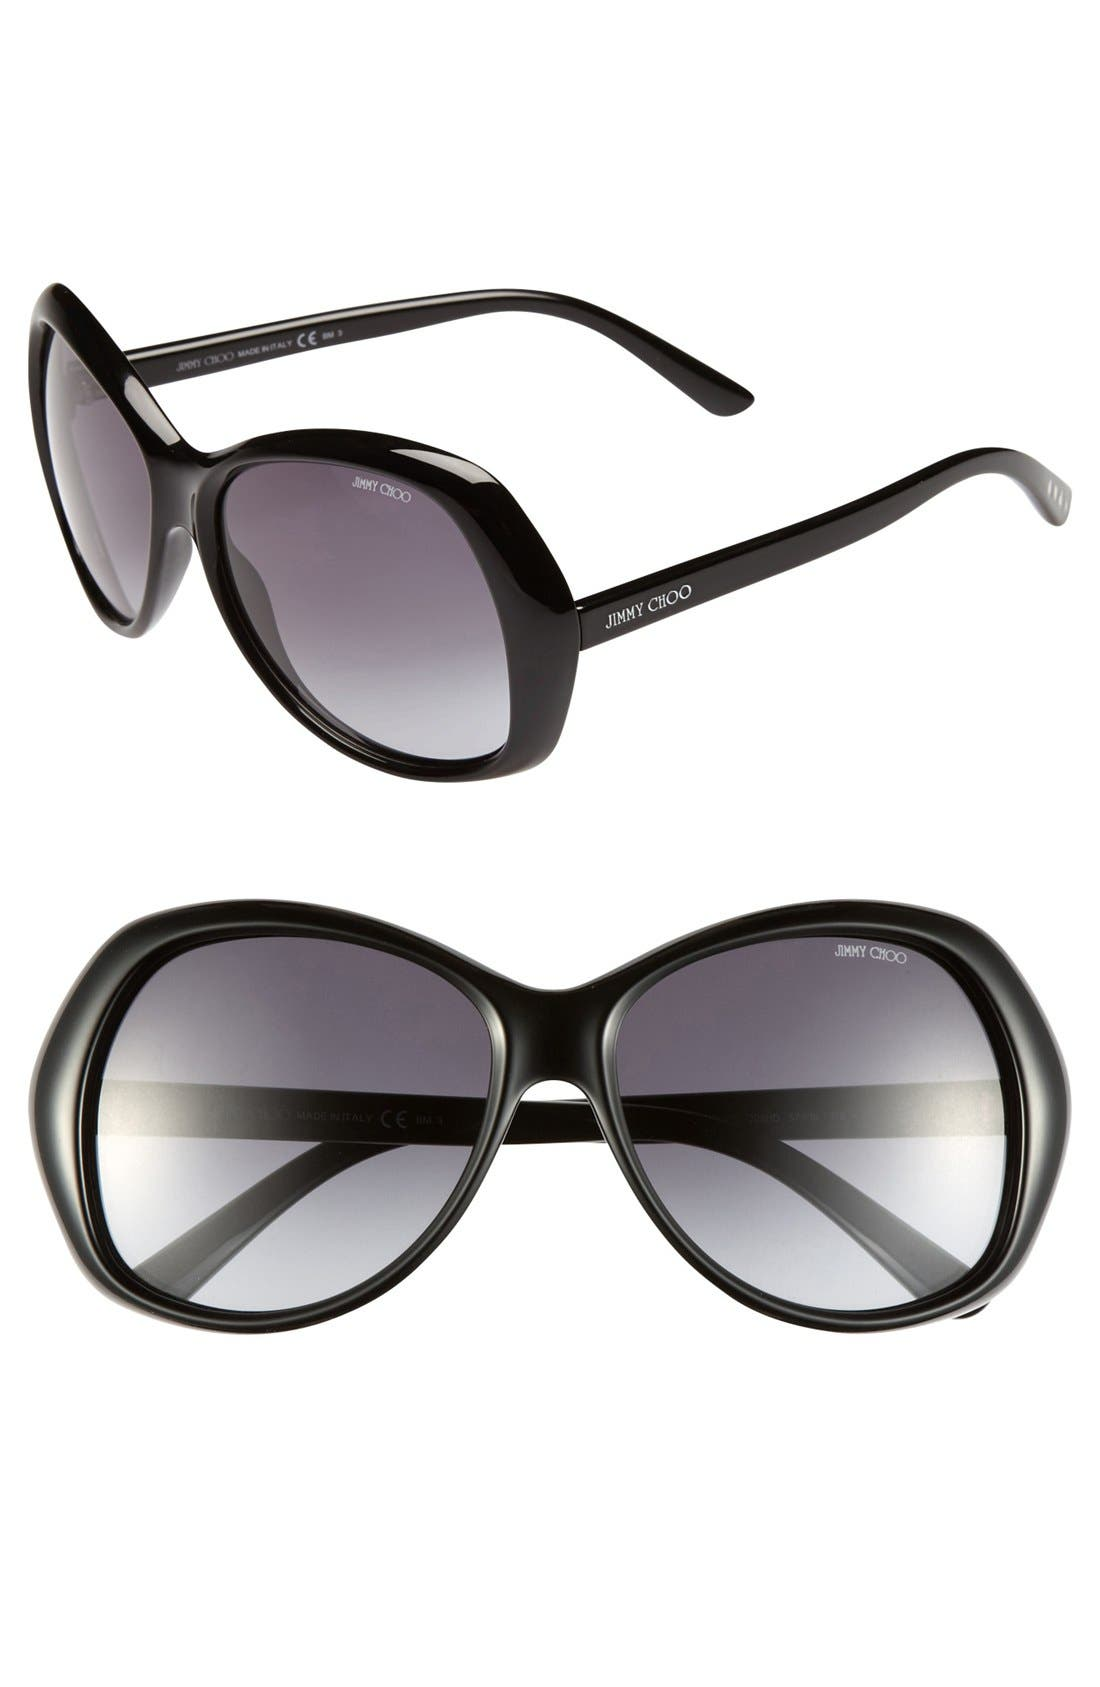 Main Image - Jimmy Choo 'Galen' 57mm Sunglasses